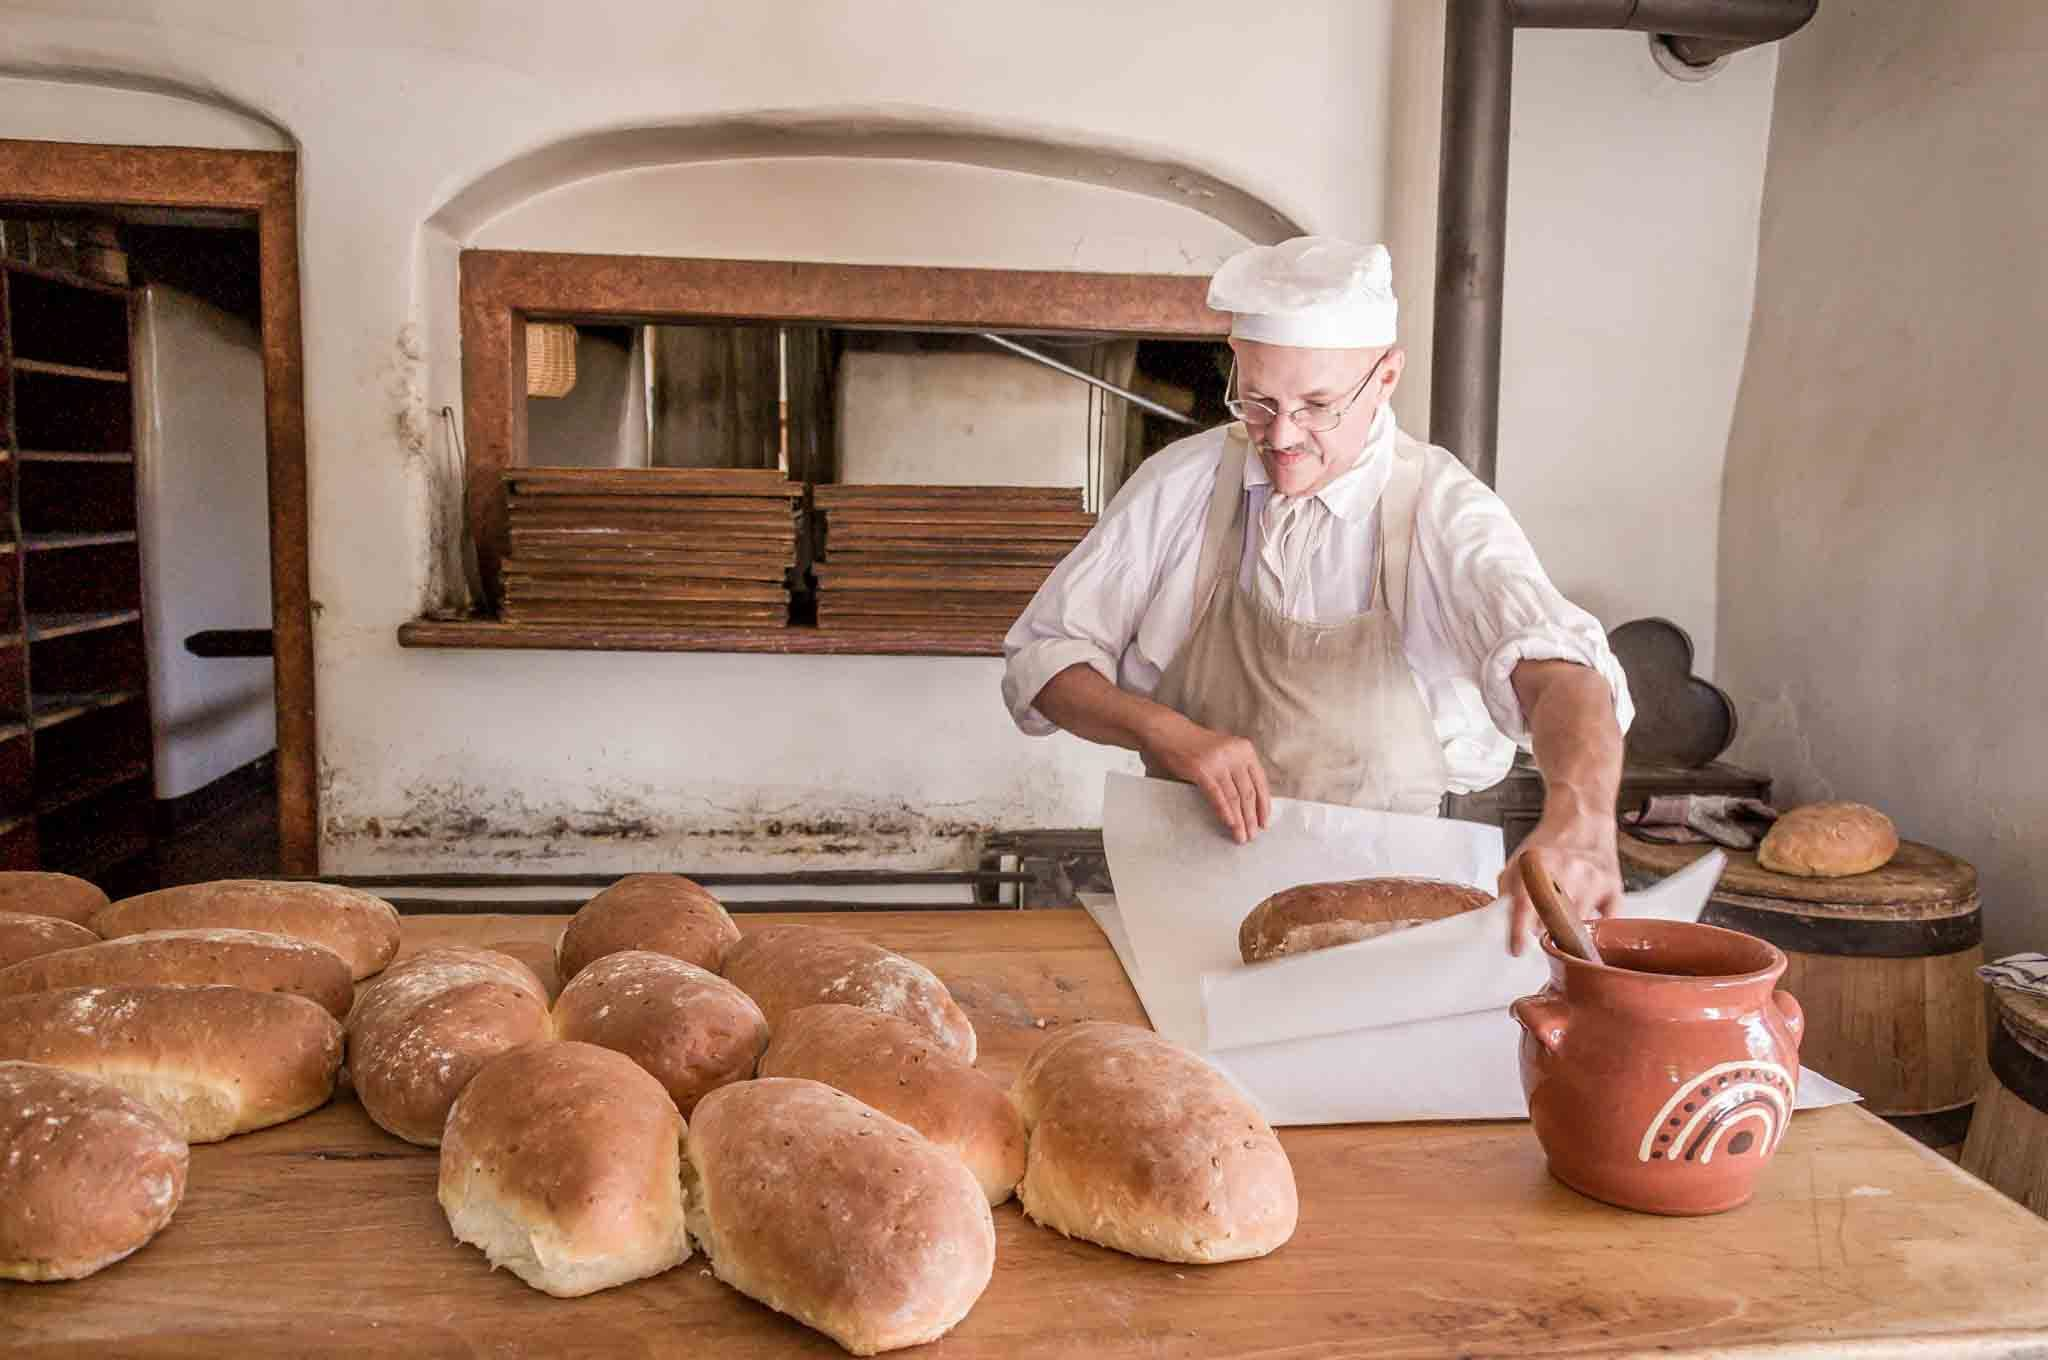 Baker making onion bread loaves at Old Salem bakery in North Carolina